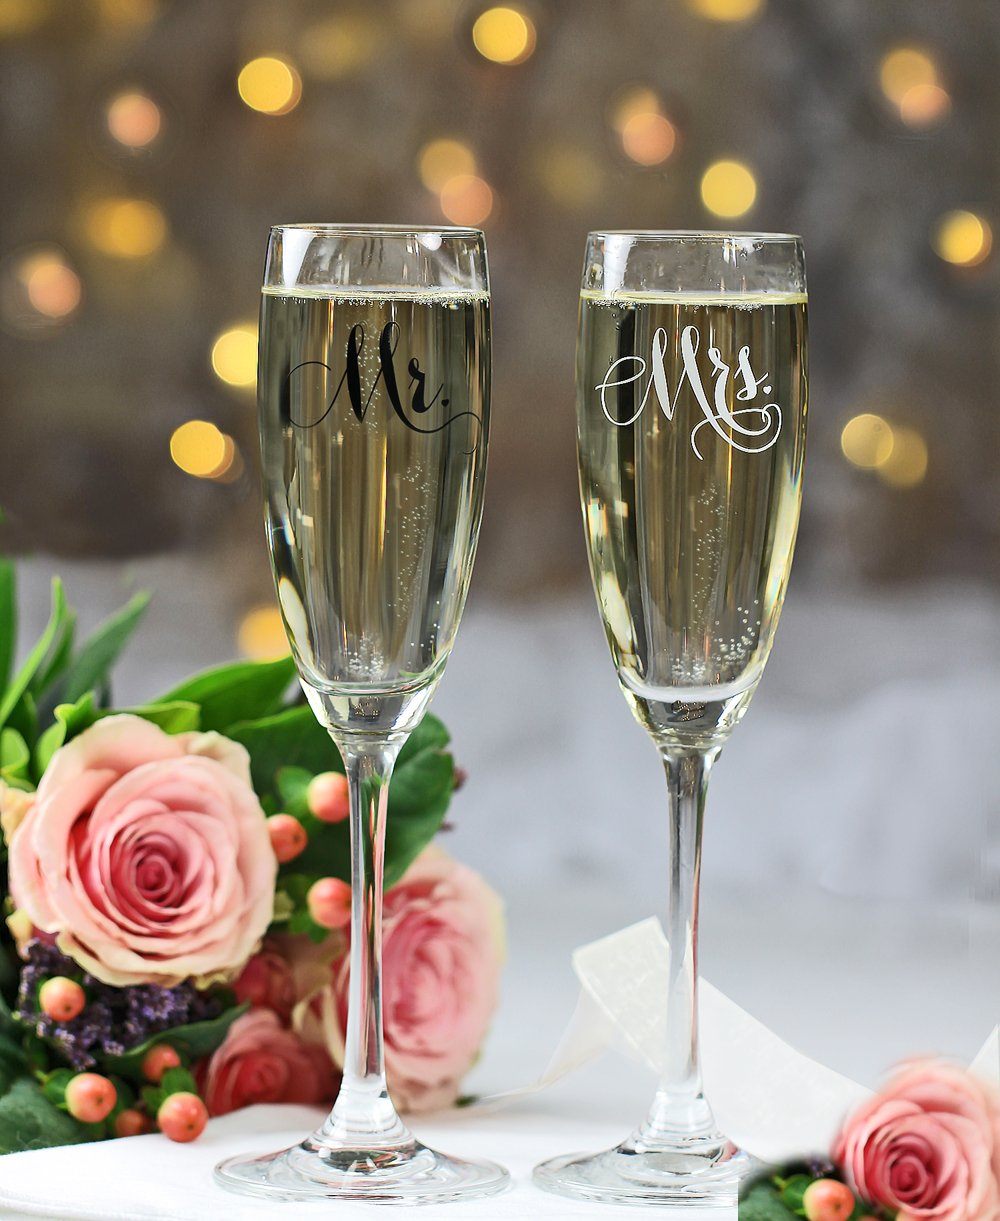 All Things Weddings, Mr. and Mrs. Wedding Glass Champagne Toasting Flutes, Reception or Engagement Bride and Groom Glasses, Set of 2 by All Things Weddings (Image #6)